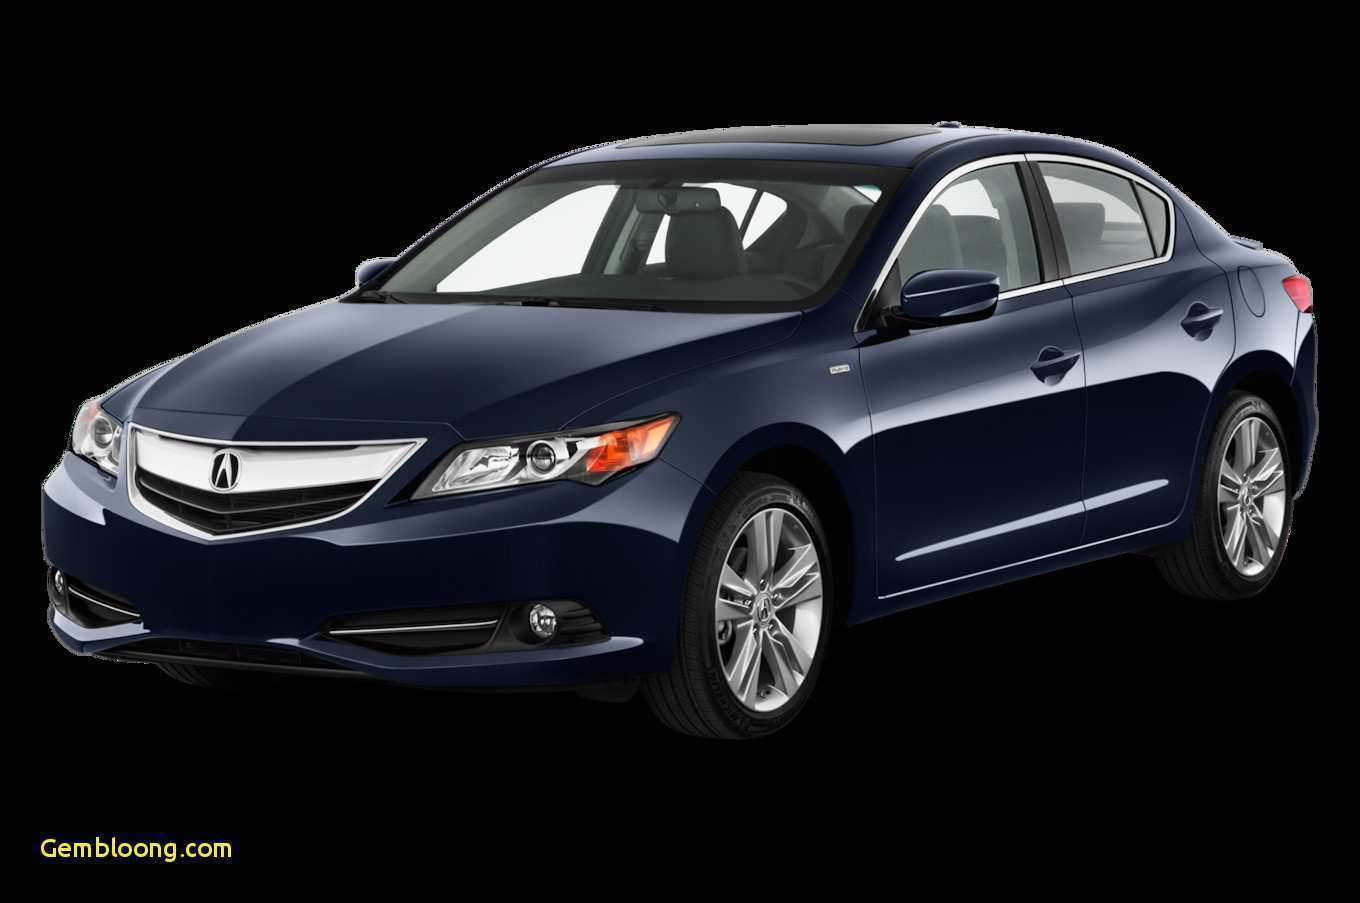 21 All New 2019 Acura Tl Type S Picture